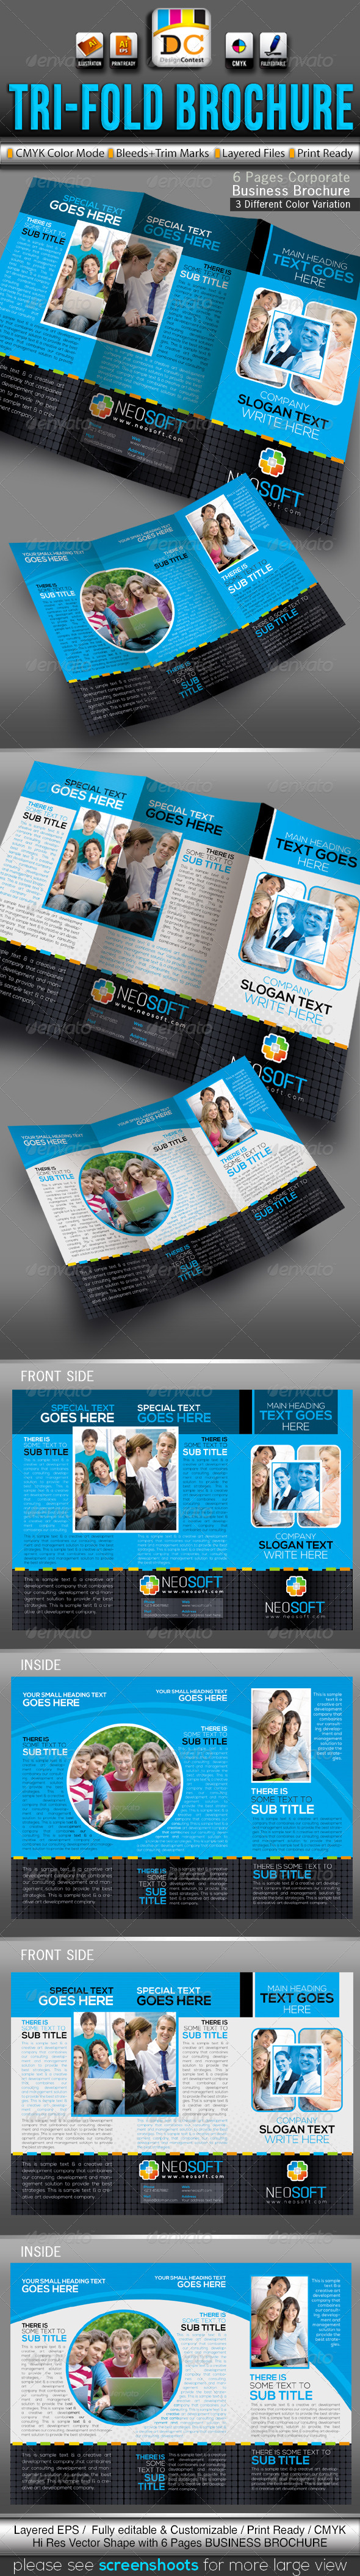 NeoSoft Tri-fold Corporate Business Brochure  - Corporate Brochures